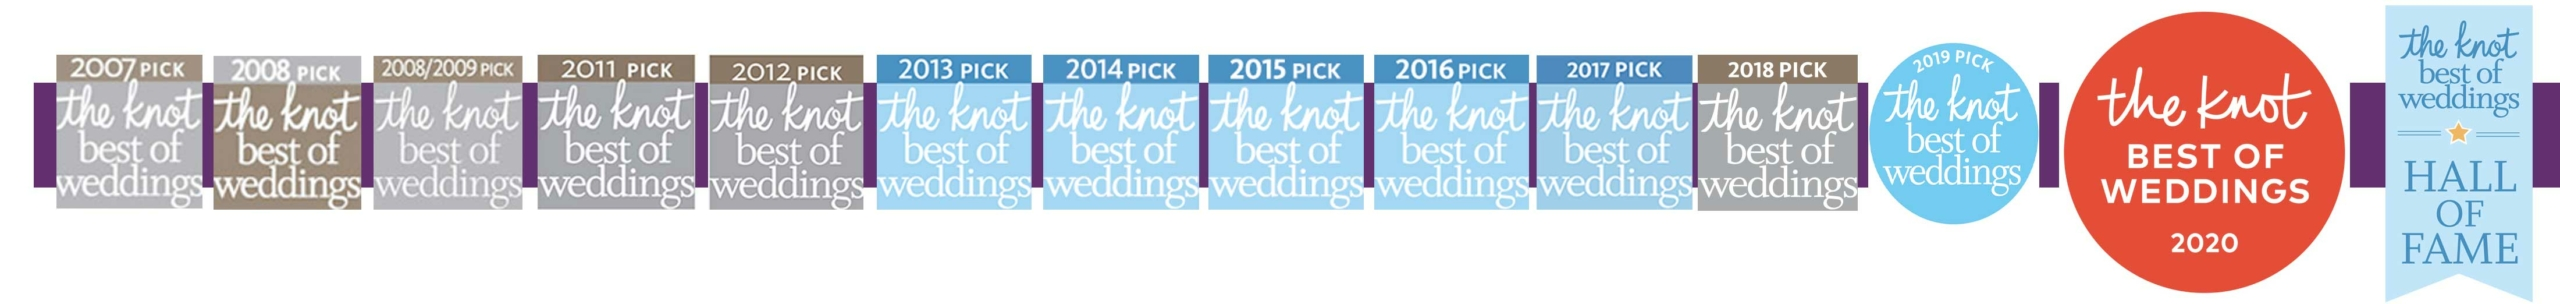 The Knot Best of Weddings 2020 Chicago Wedding DJ Something 2 Dance 2